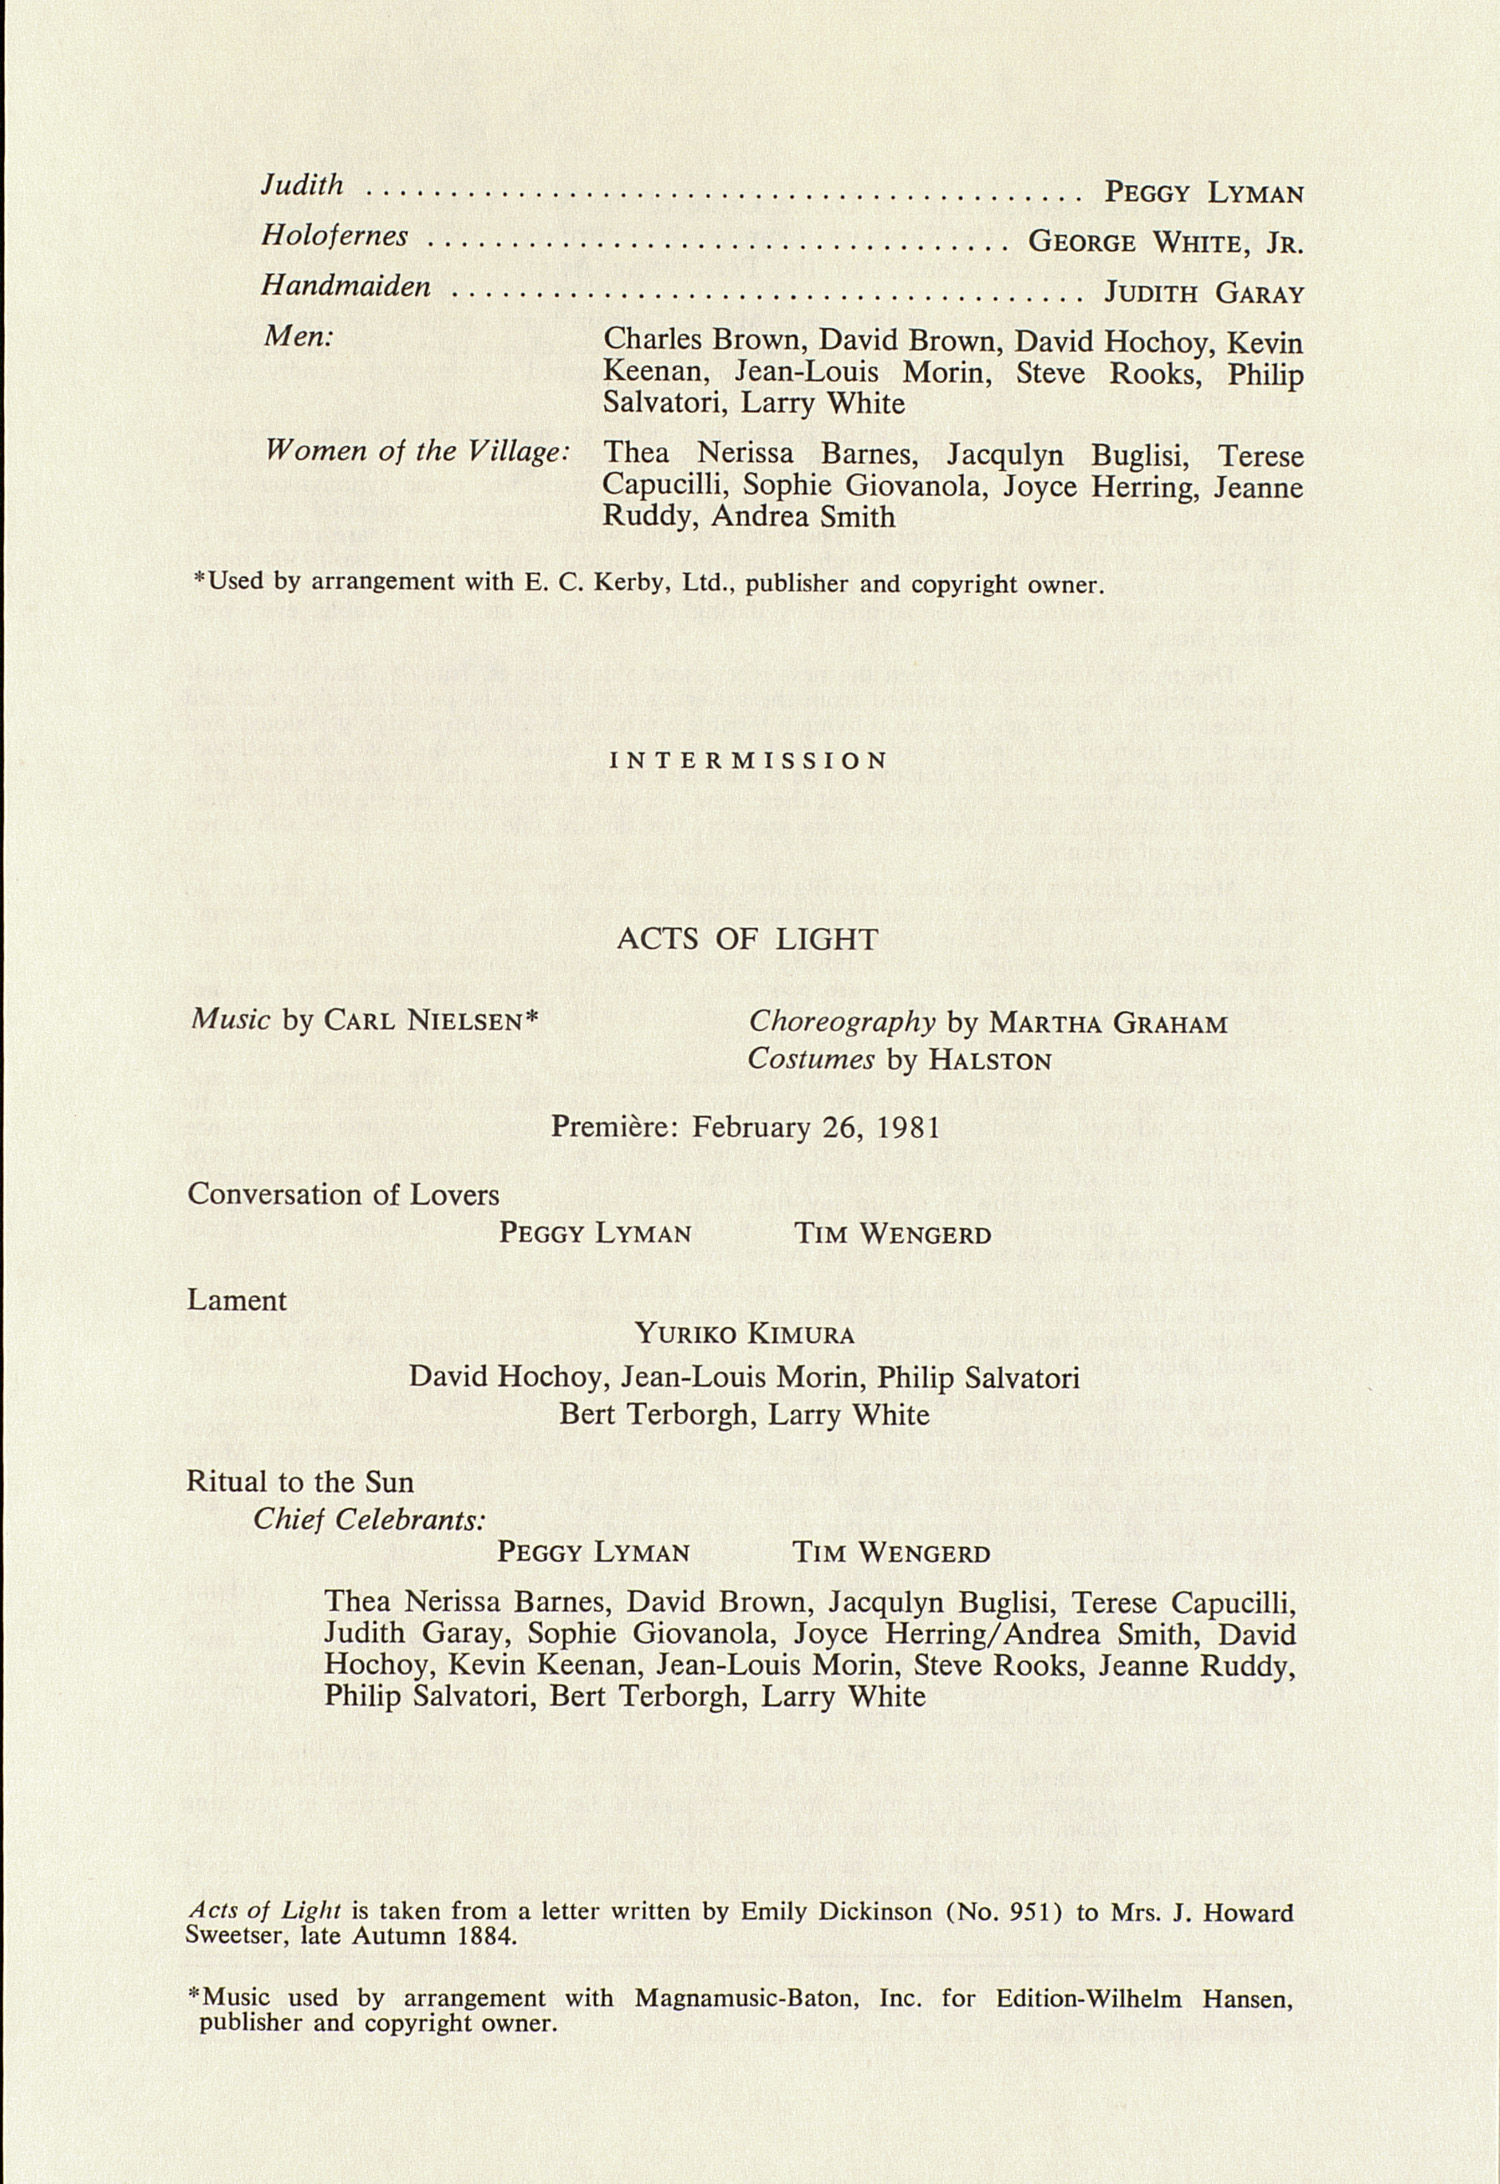 UMS Concert Program, October 30, 1981: International Presentations Of Music & Dance -- Martha Graham Dance Company image